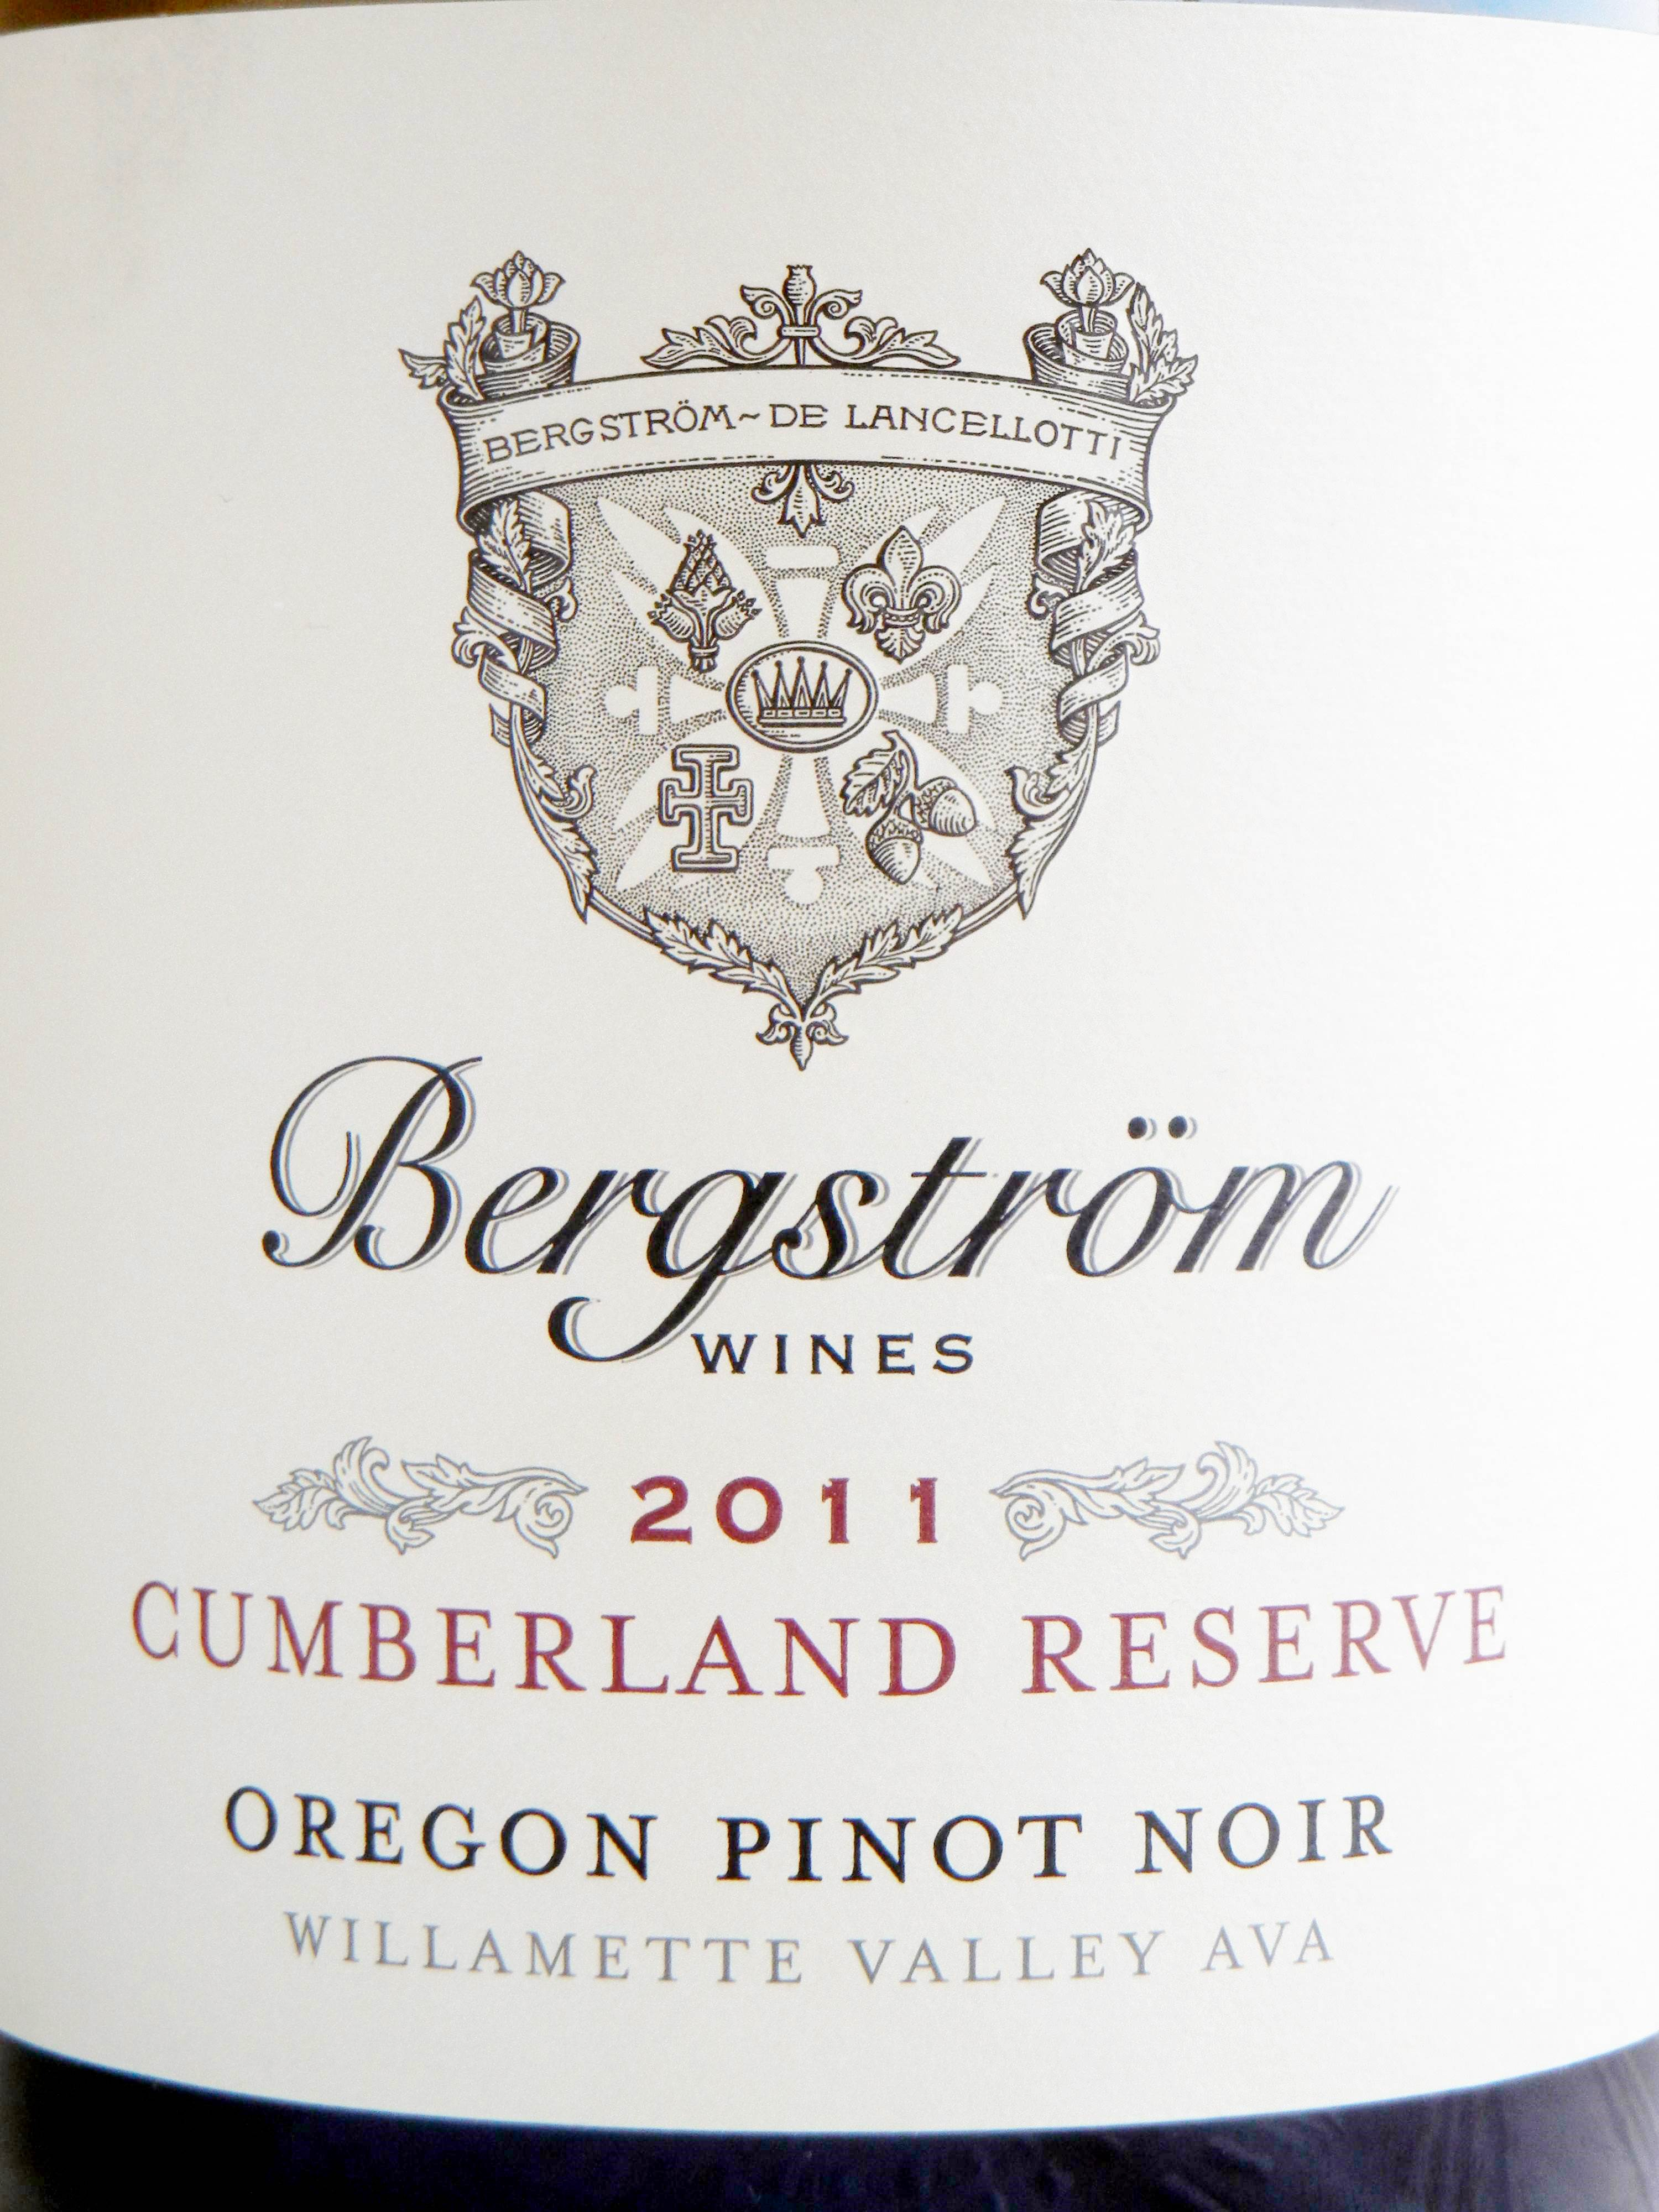 Bergstrom Cumberland Reserve Pinot Noir 2011 Label - BC Pinot Noir Tasting Review 11